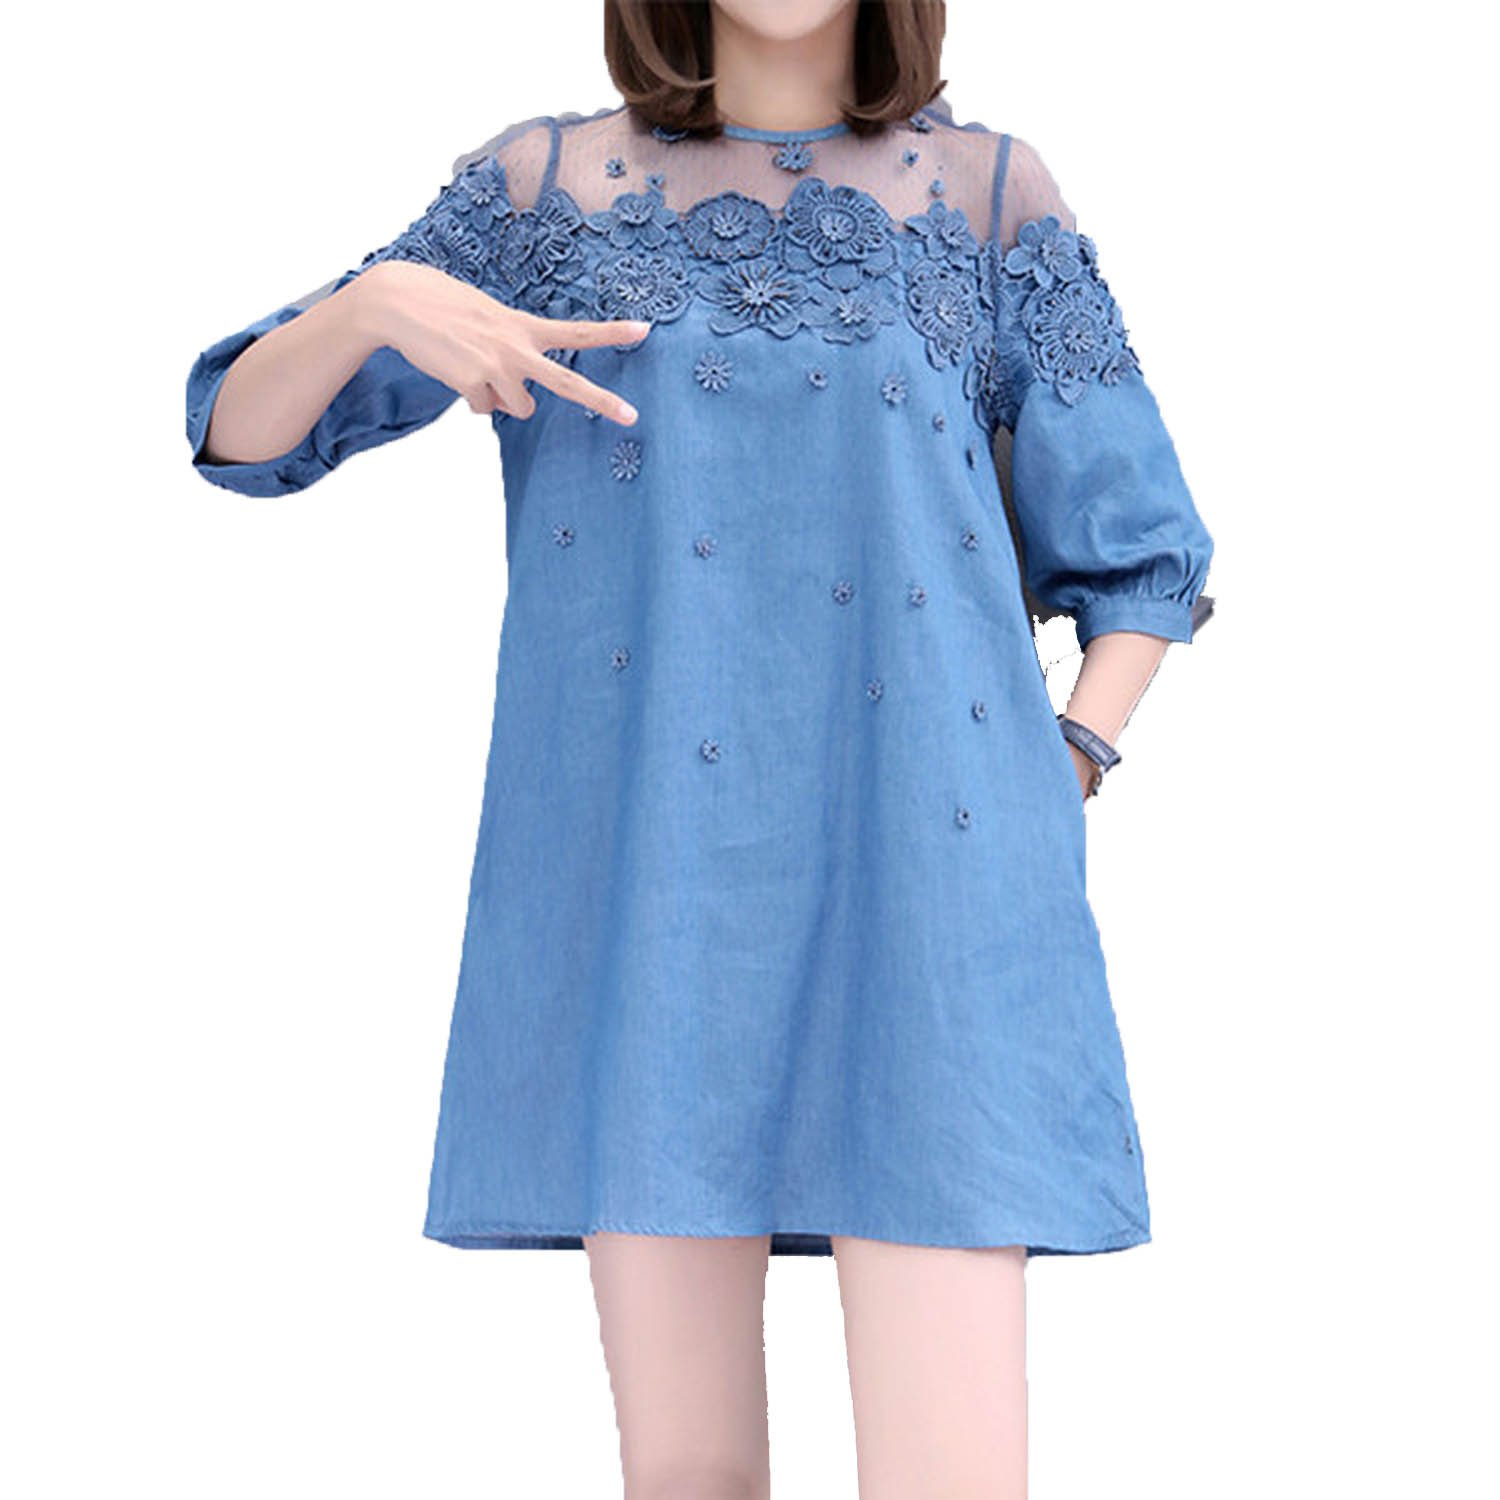 2c6e54a5d16 UNIQUE SHOP New Arrival Lace Bead Patchwork Summer Women Denim Dresses Half  Sleeves Loose A Line Dresses Plus Sizes Jeans Dresses D79502A